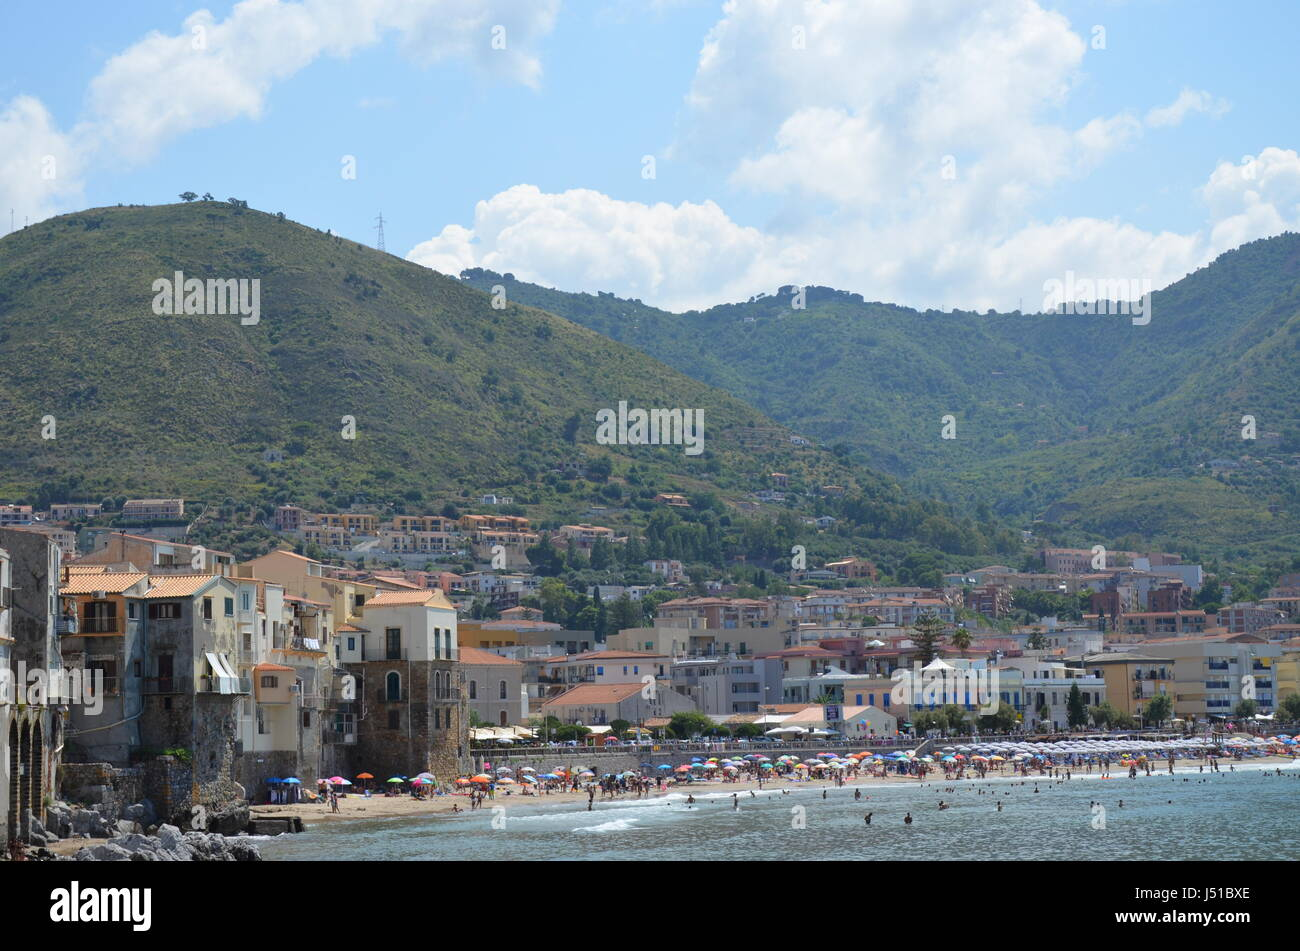 Panorama of the town Cefalu, Sicily, Italy Stock Photo